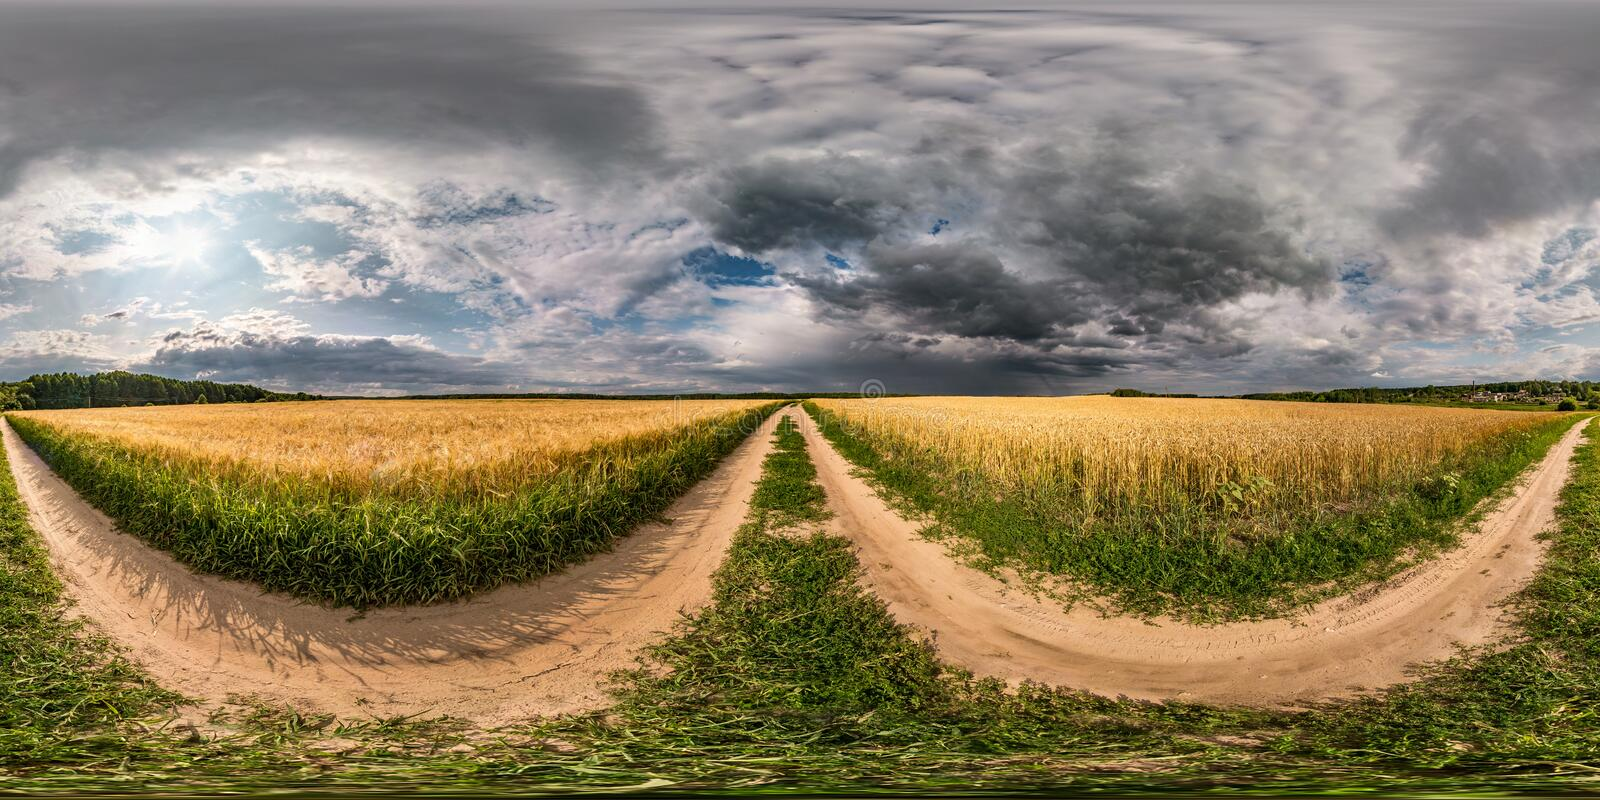 Full seamless spherical hdri panorama 360 degrees angle view on gravel road among fields with awesome clouds before storm in. Equirectangular projection with stock image